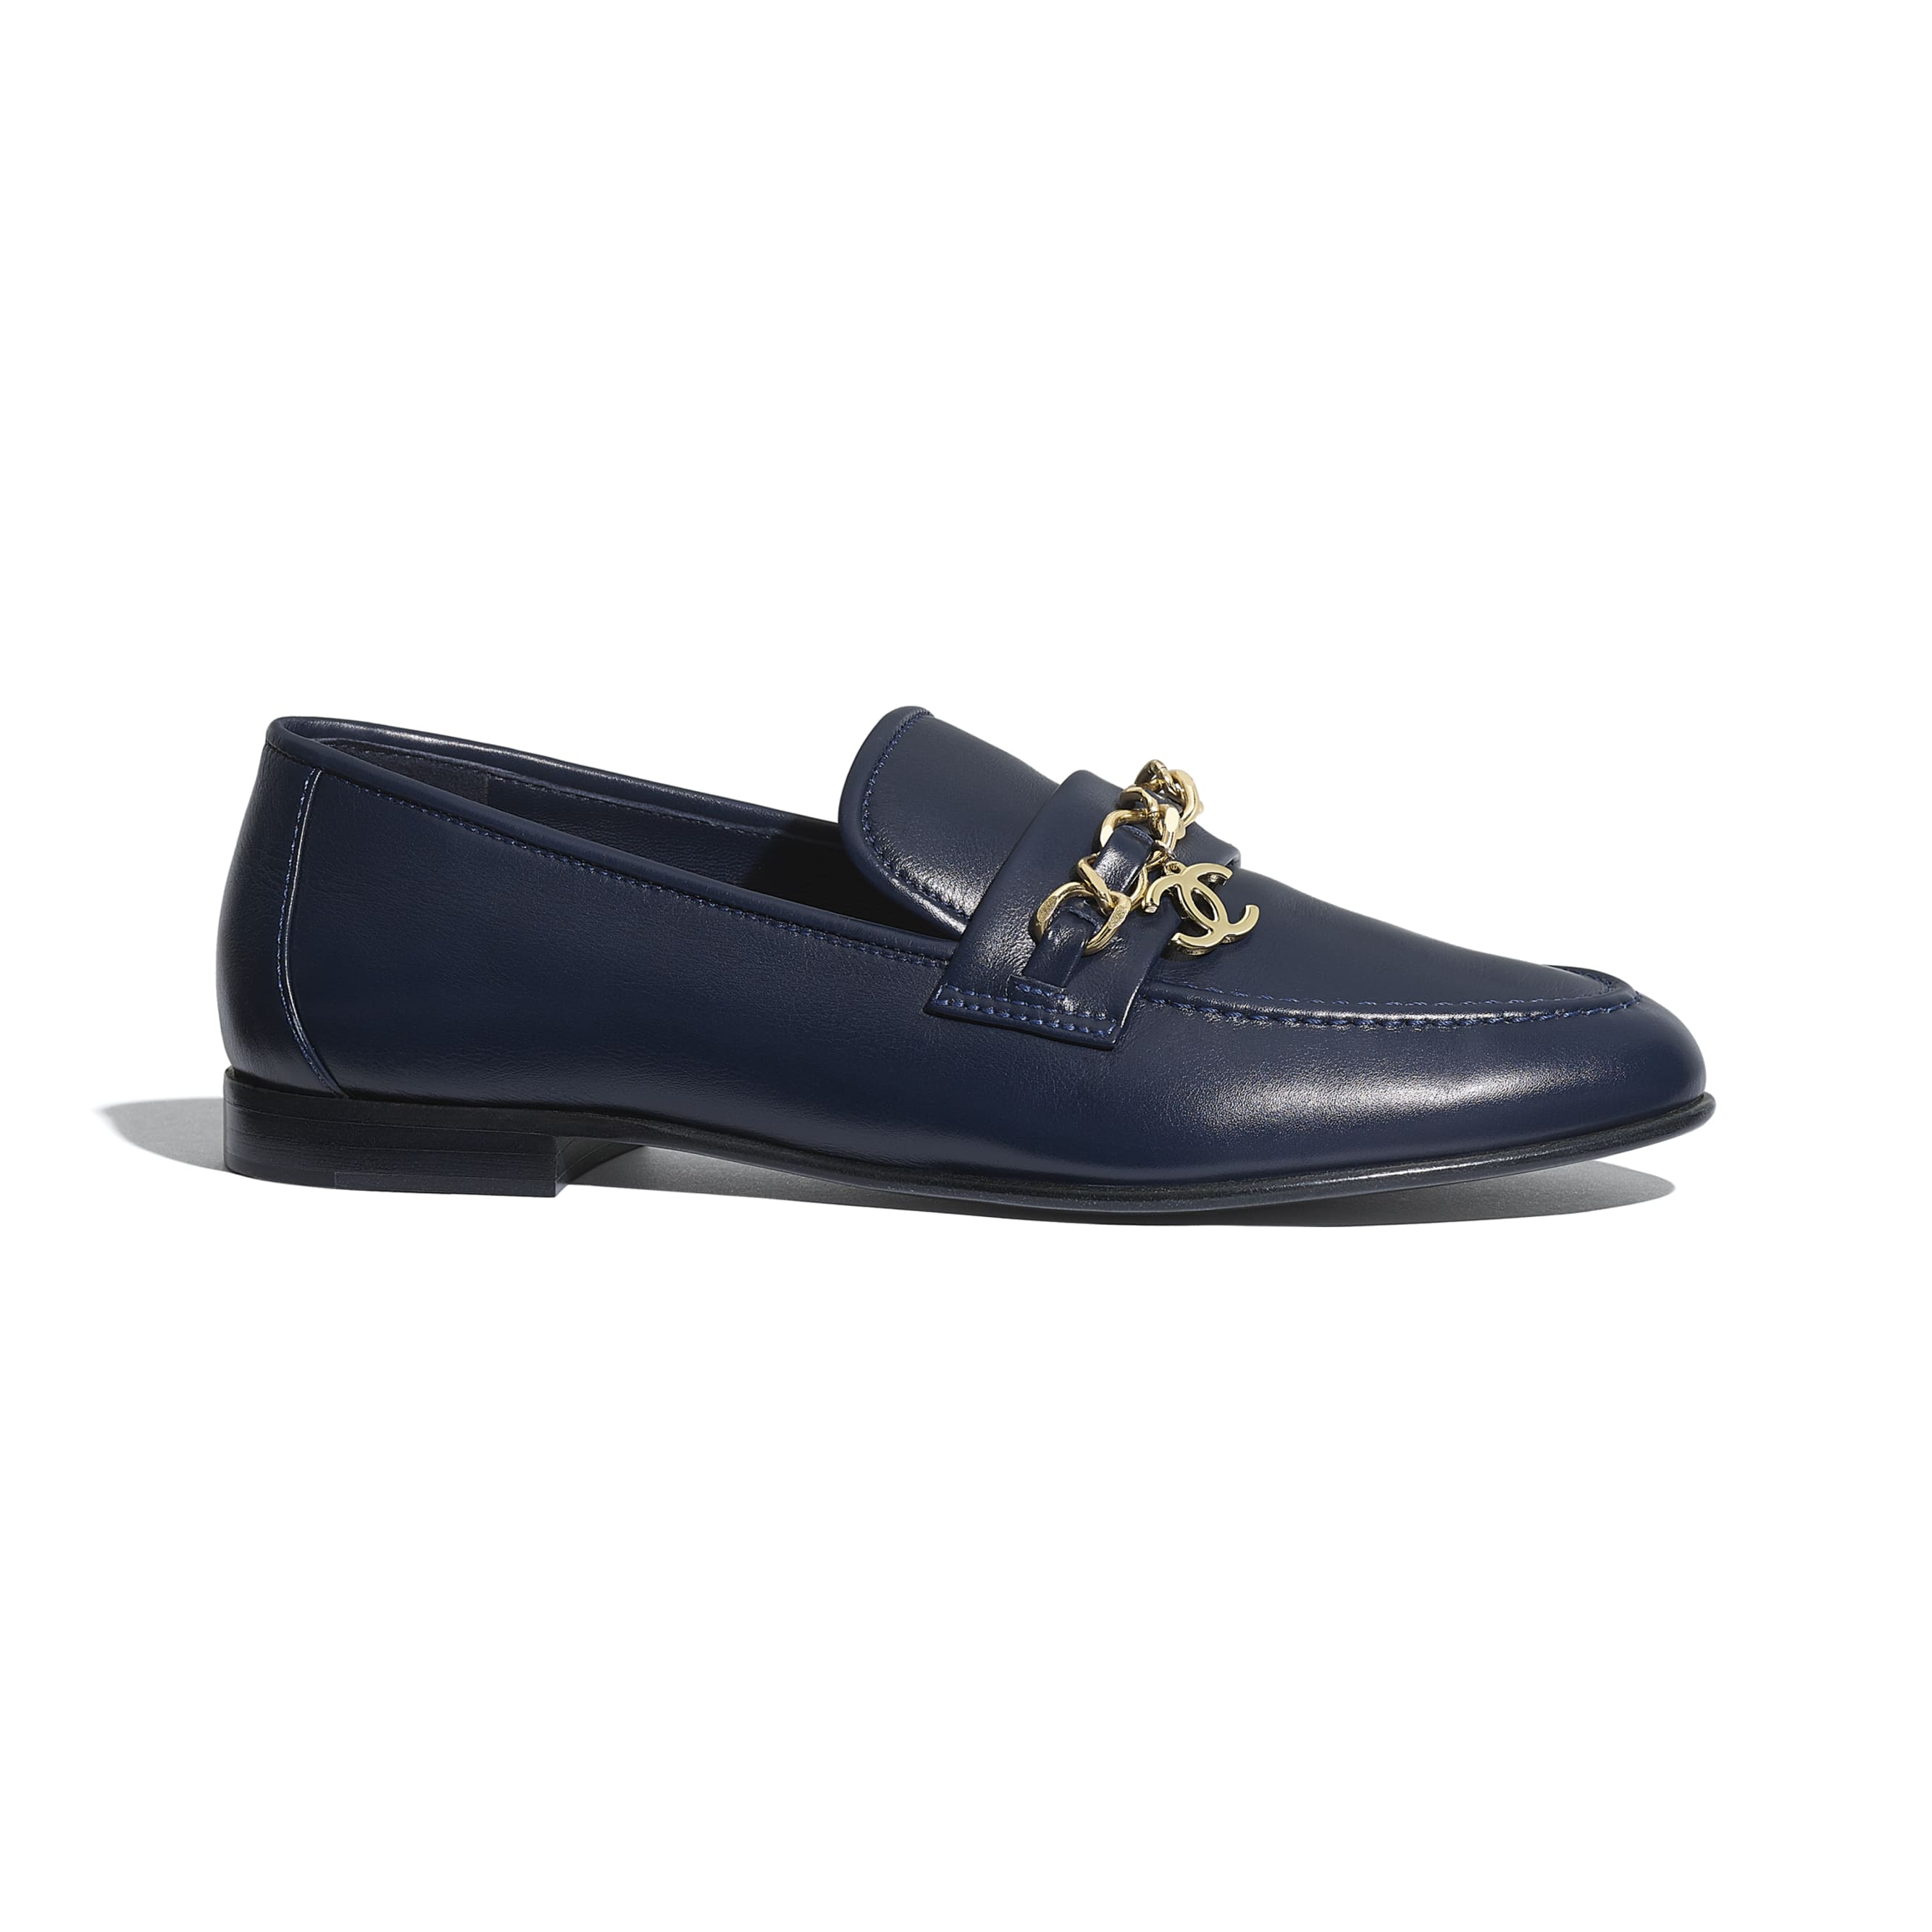 Loafers - Navy Blue - Lambskin - CHANEL - Default view - see standard sized version